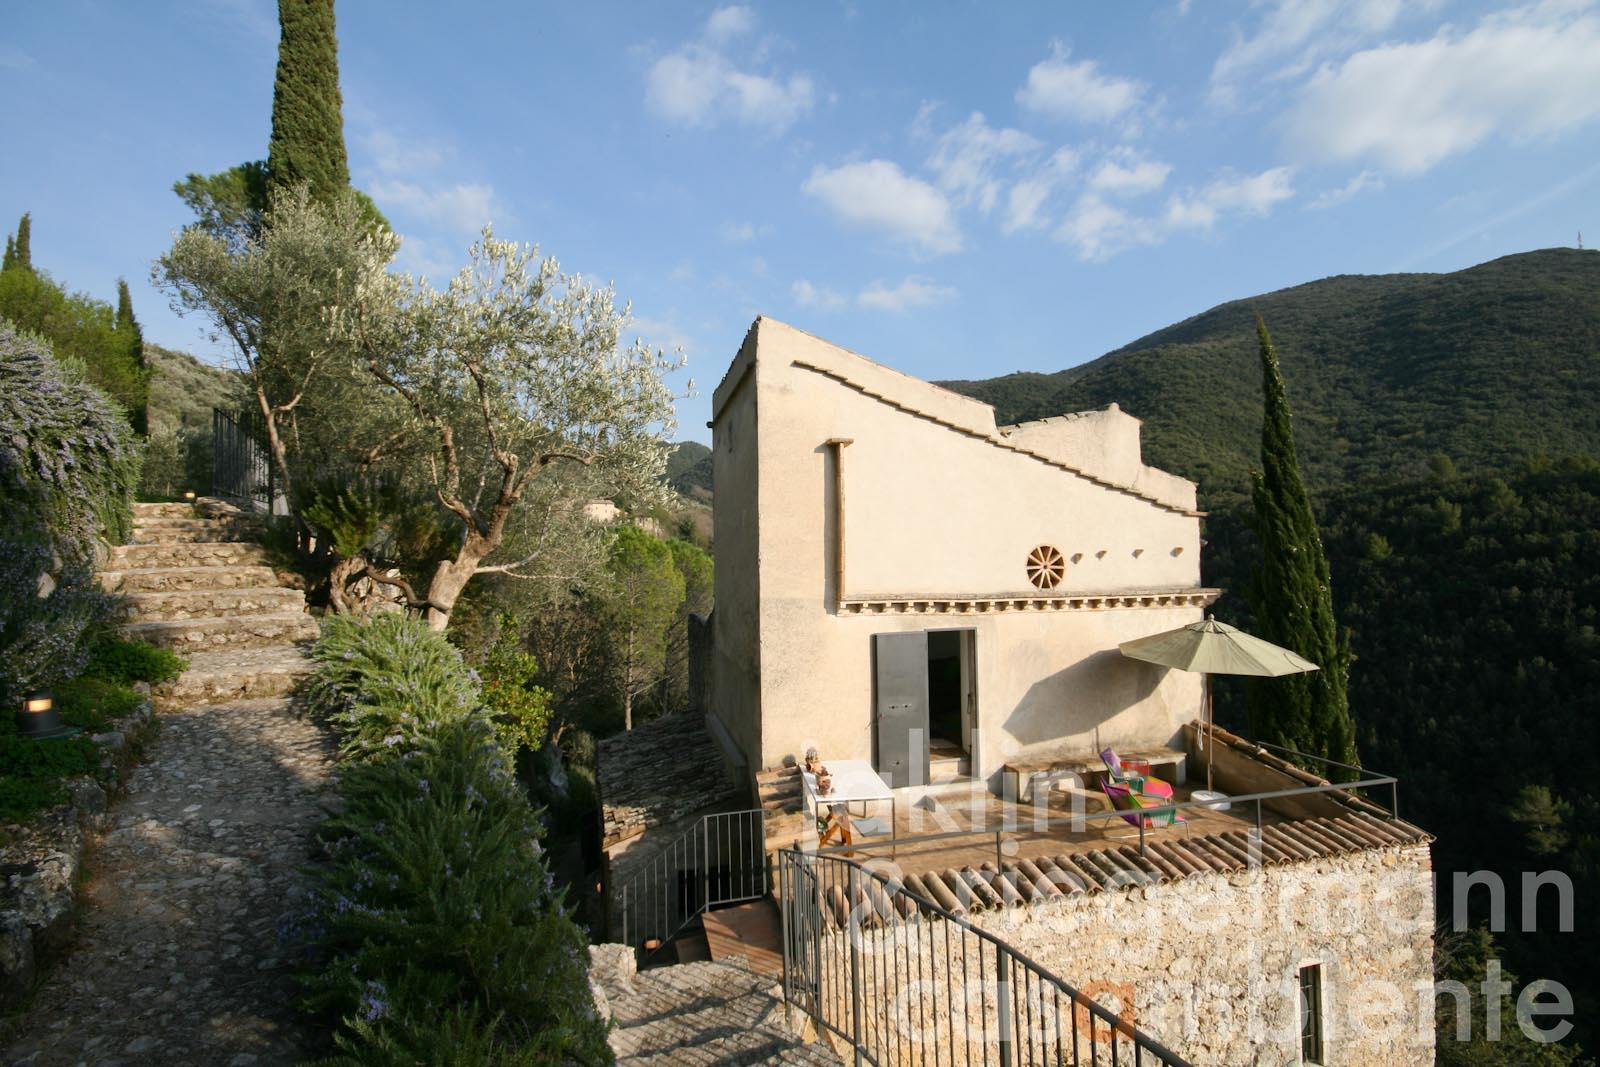 The authentically restored tower for sale with panoramic views onto the town Spoleto in Umbria